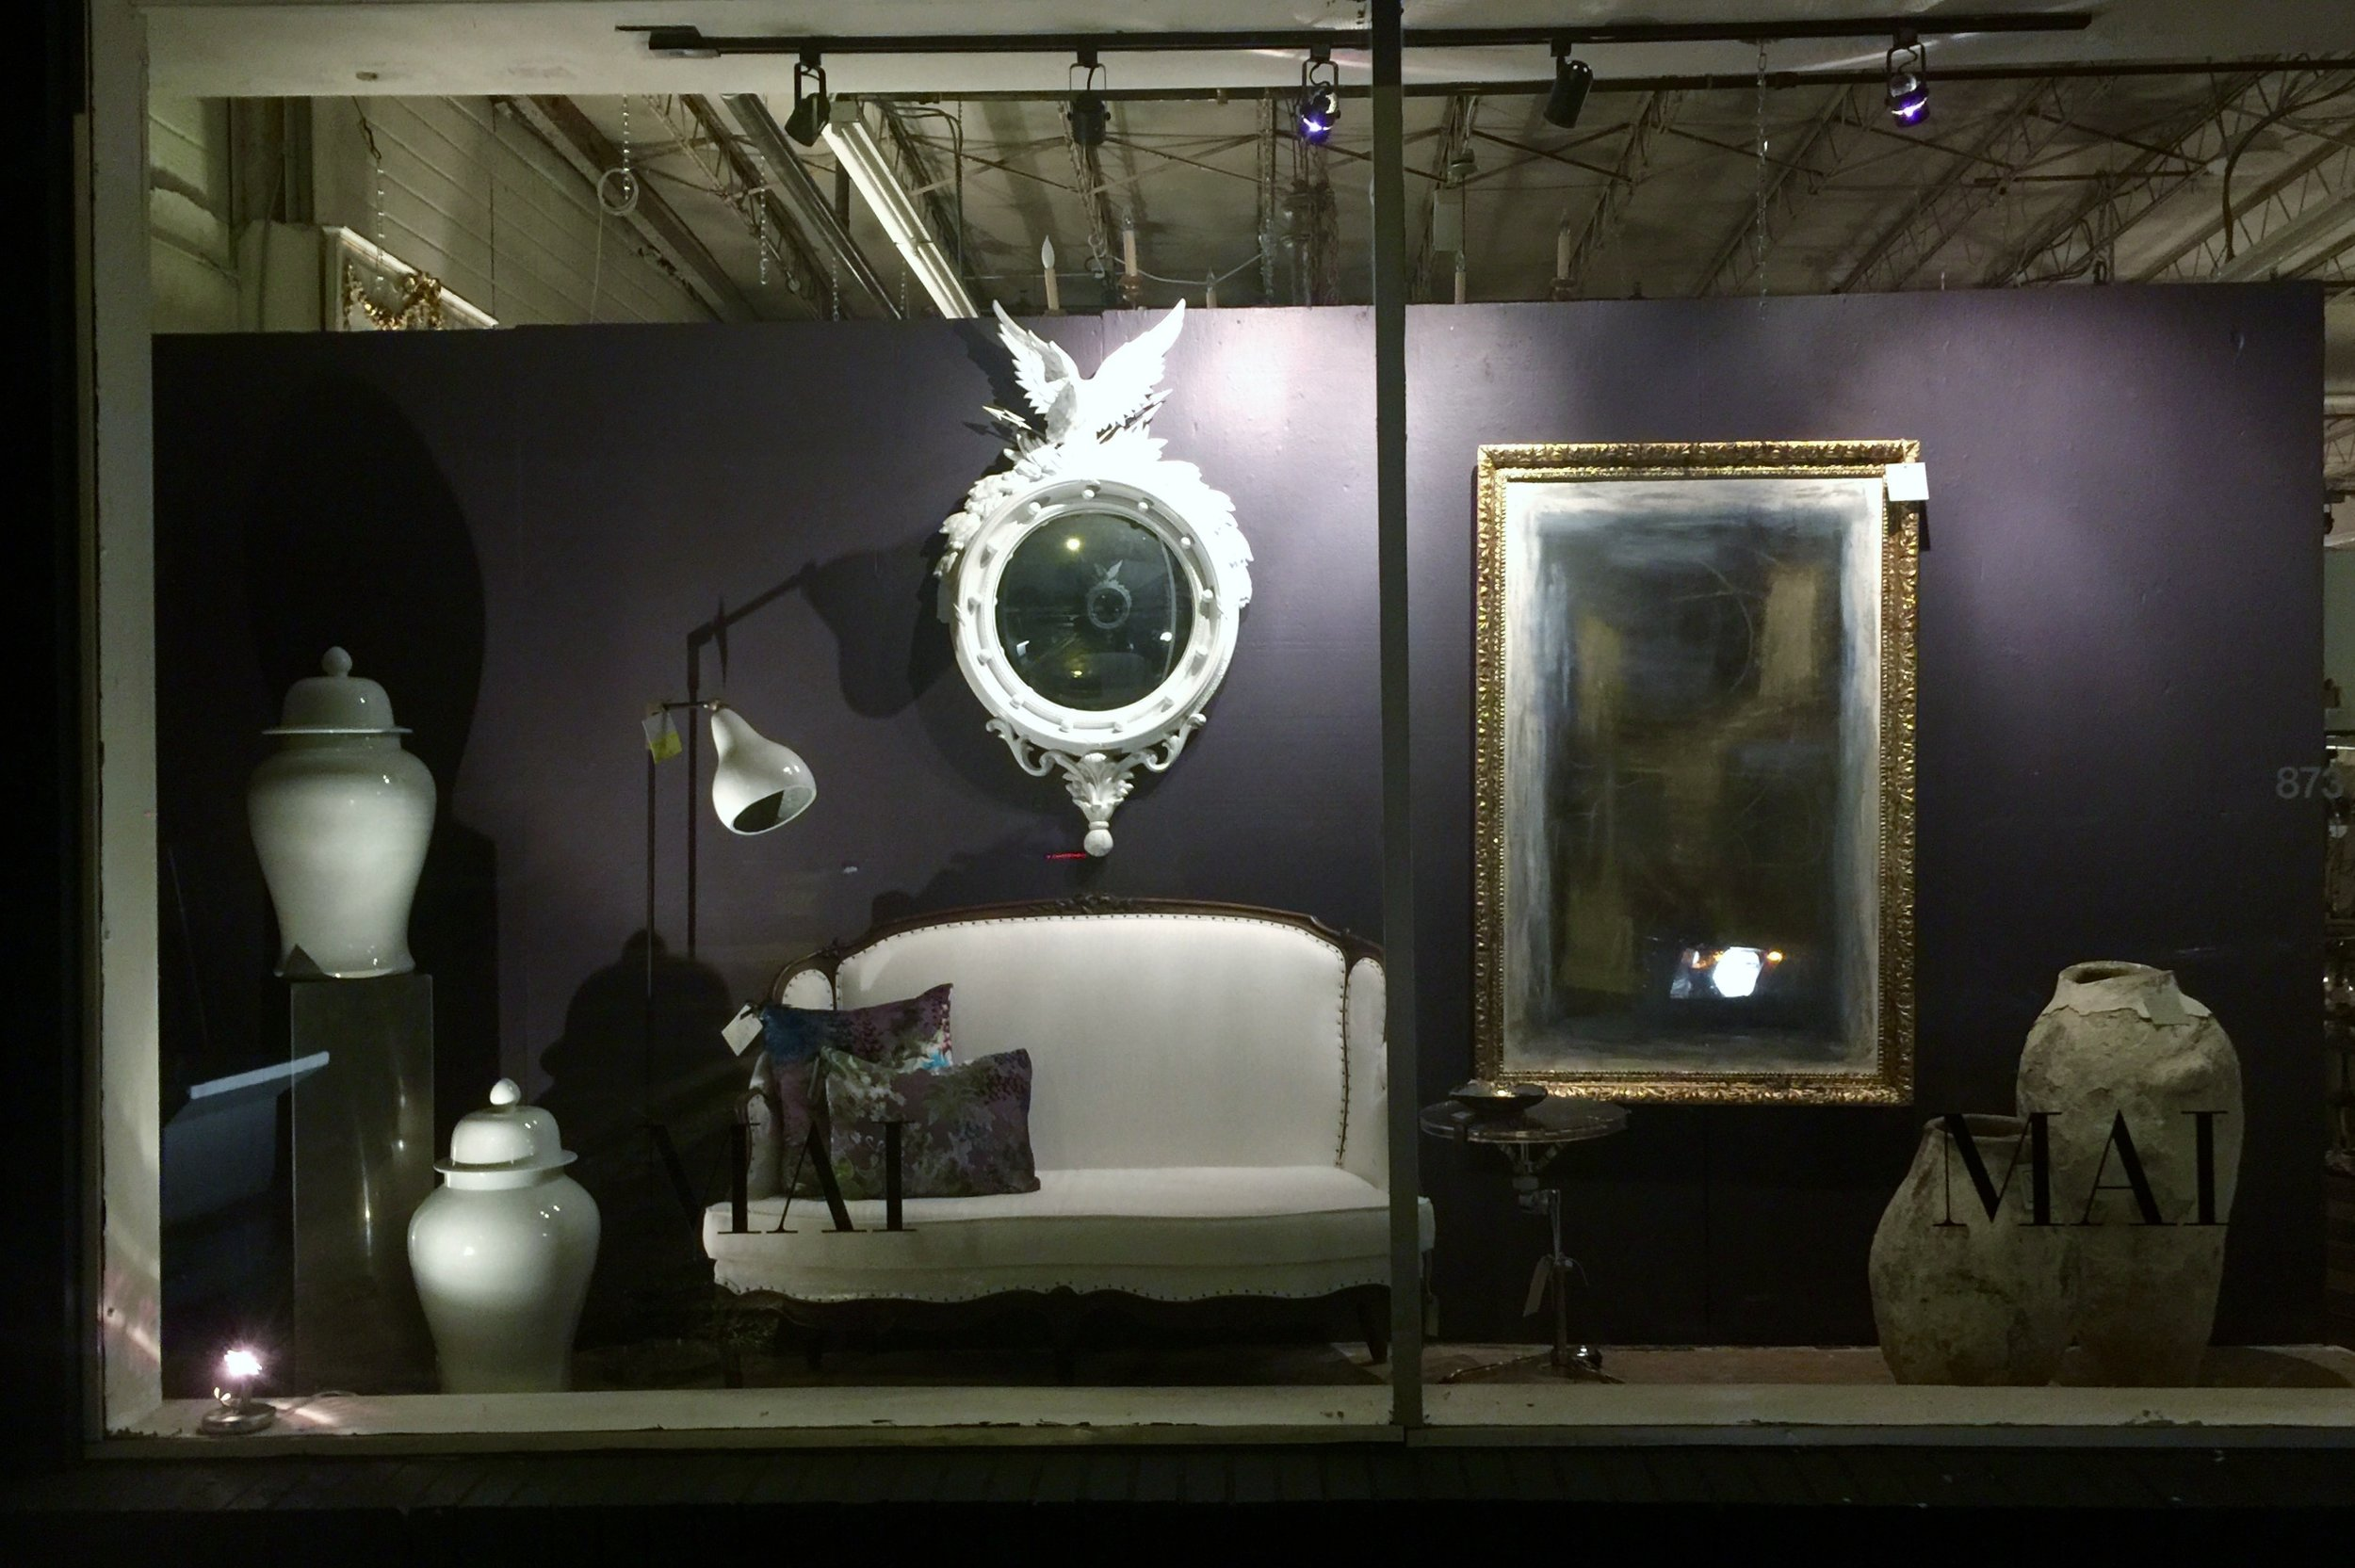 Night view of home furnishings decor window display - MAI, Houston, windows designed by Carla Aston